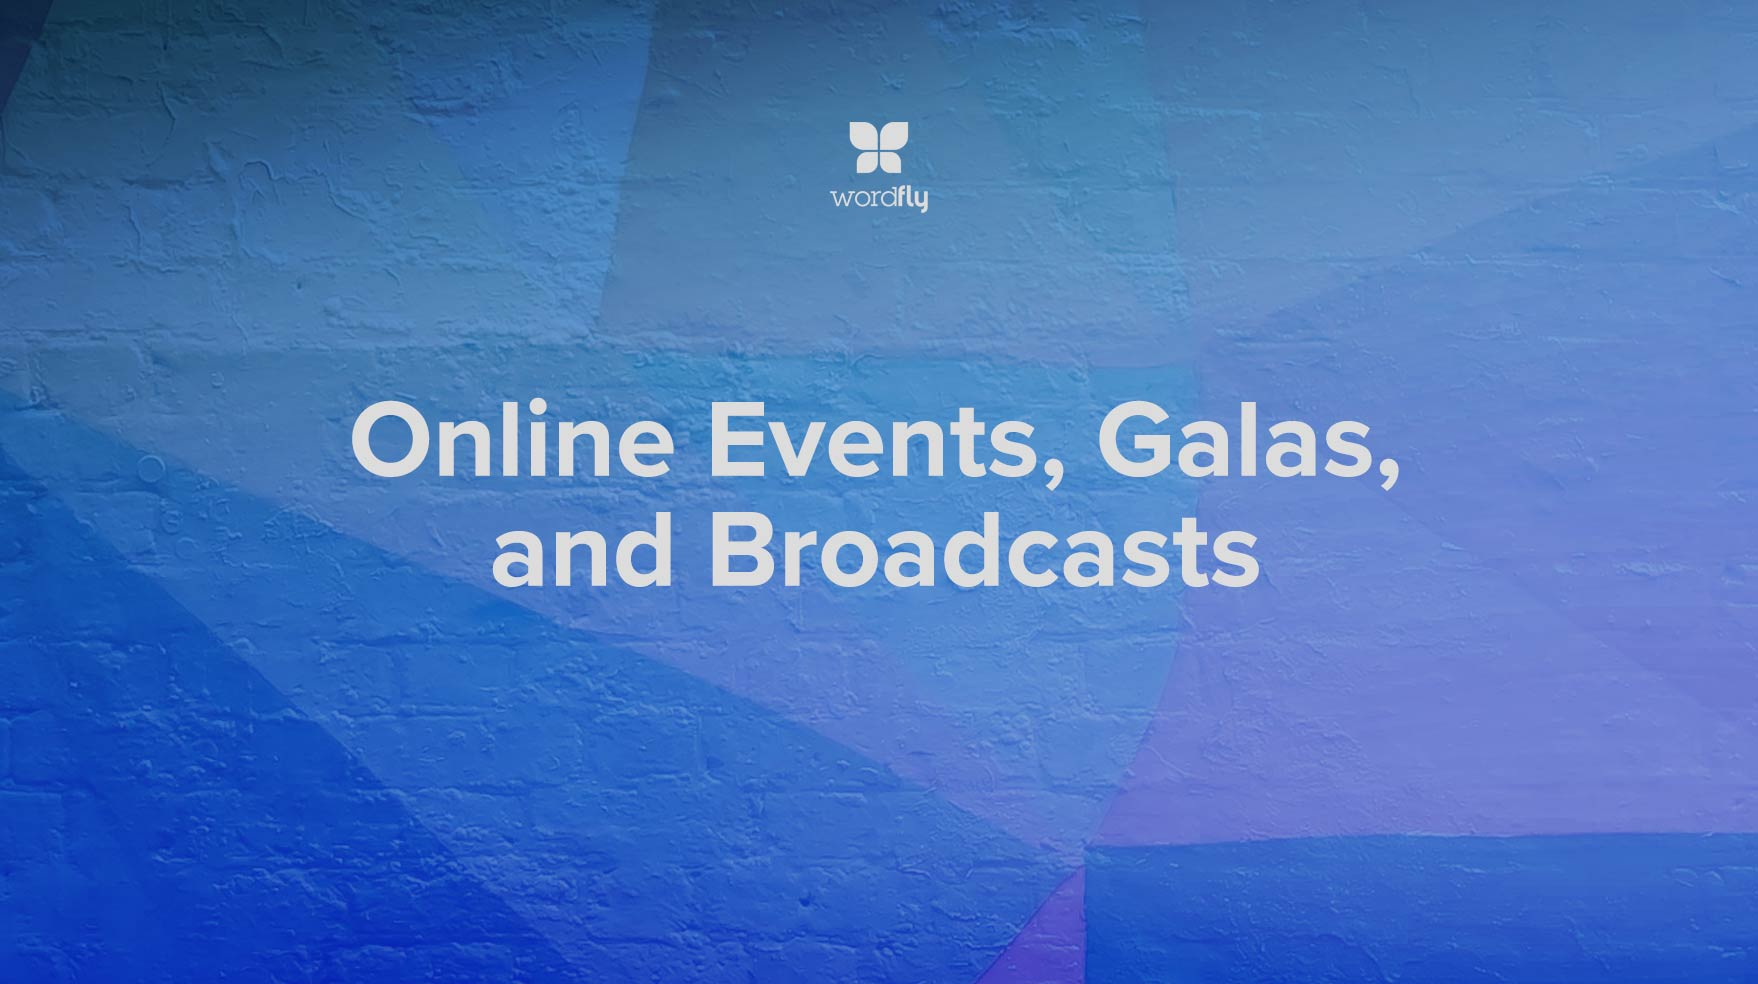 Online Events, Galas, and Broadcasts